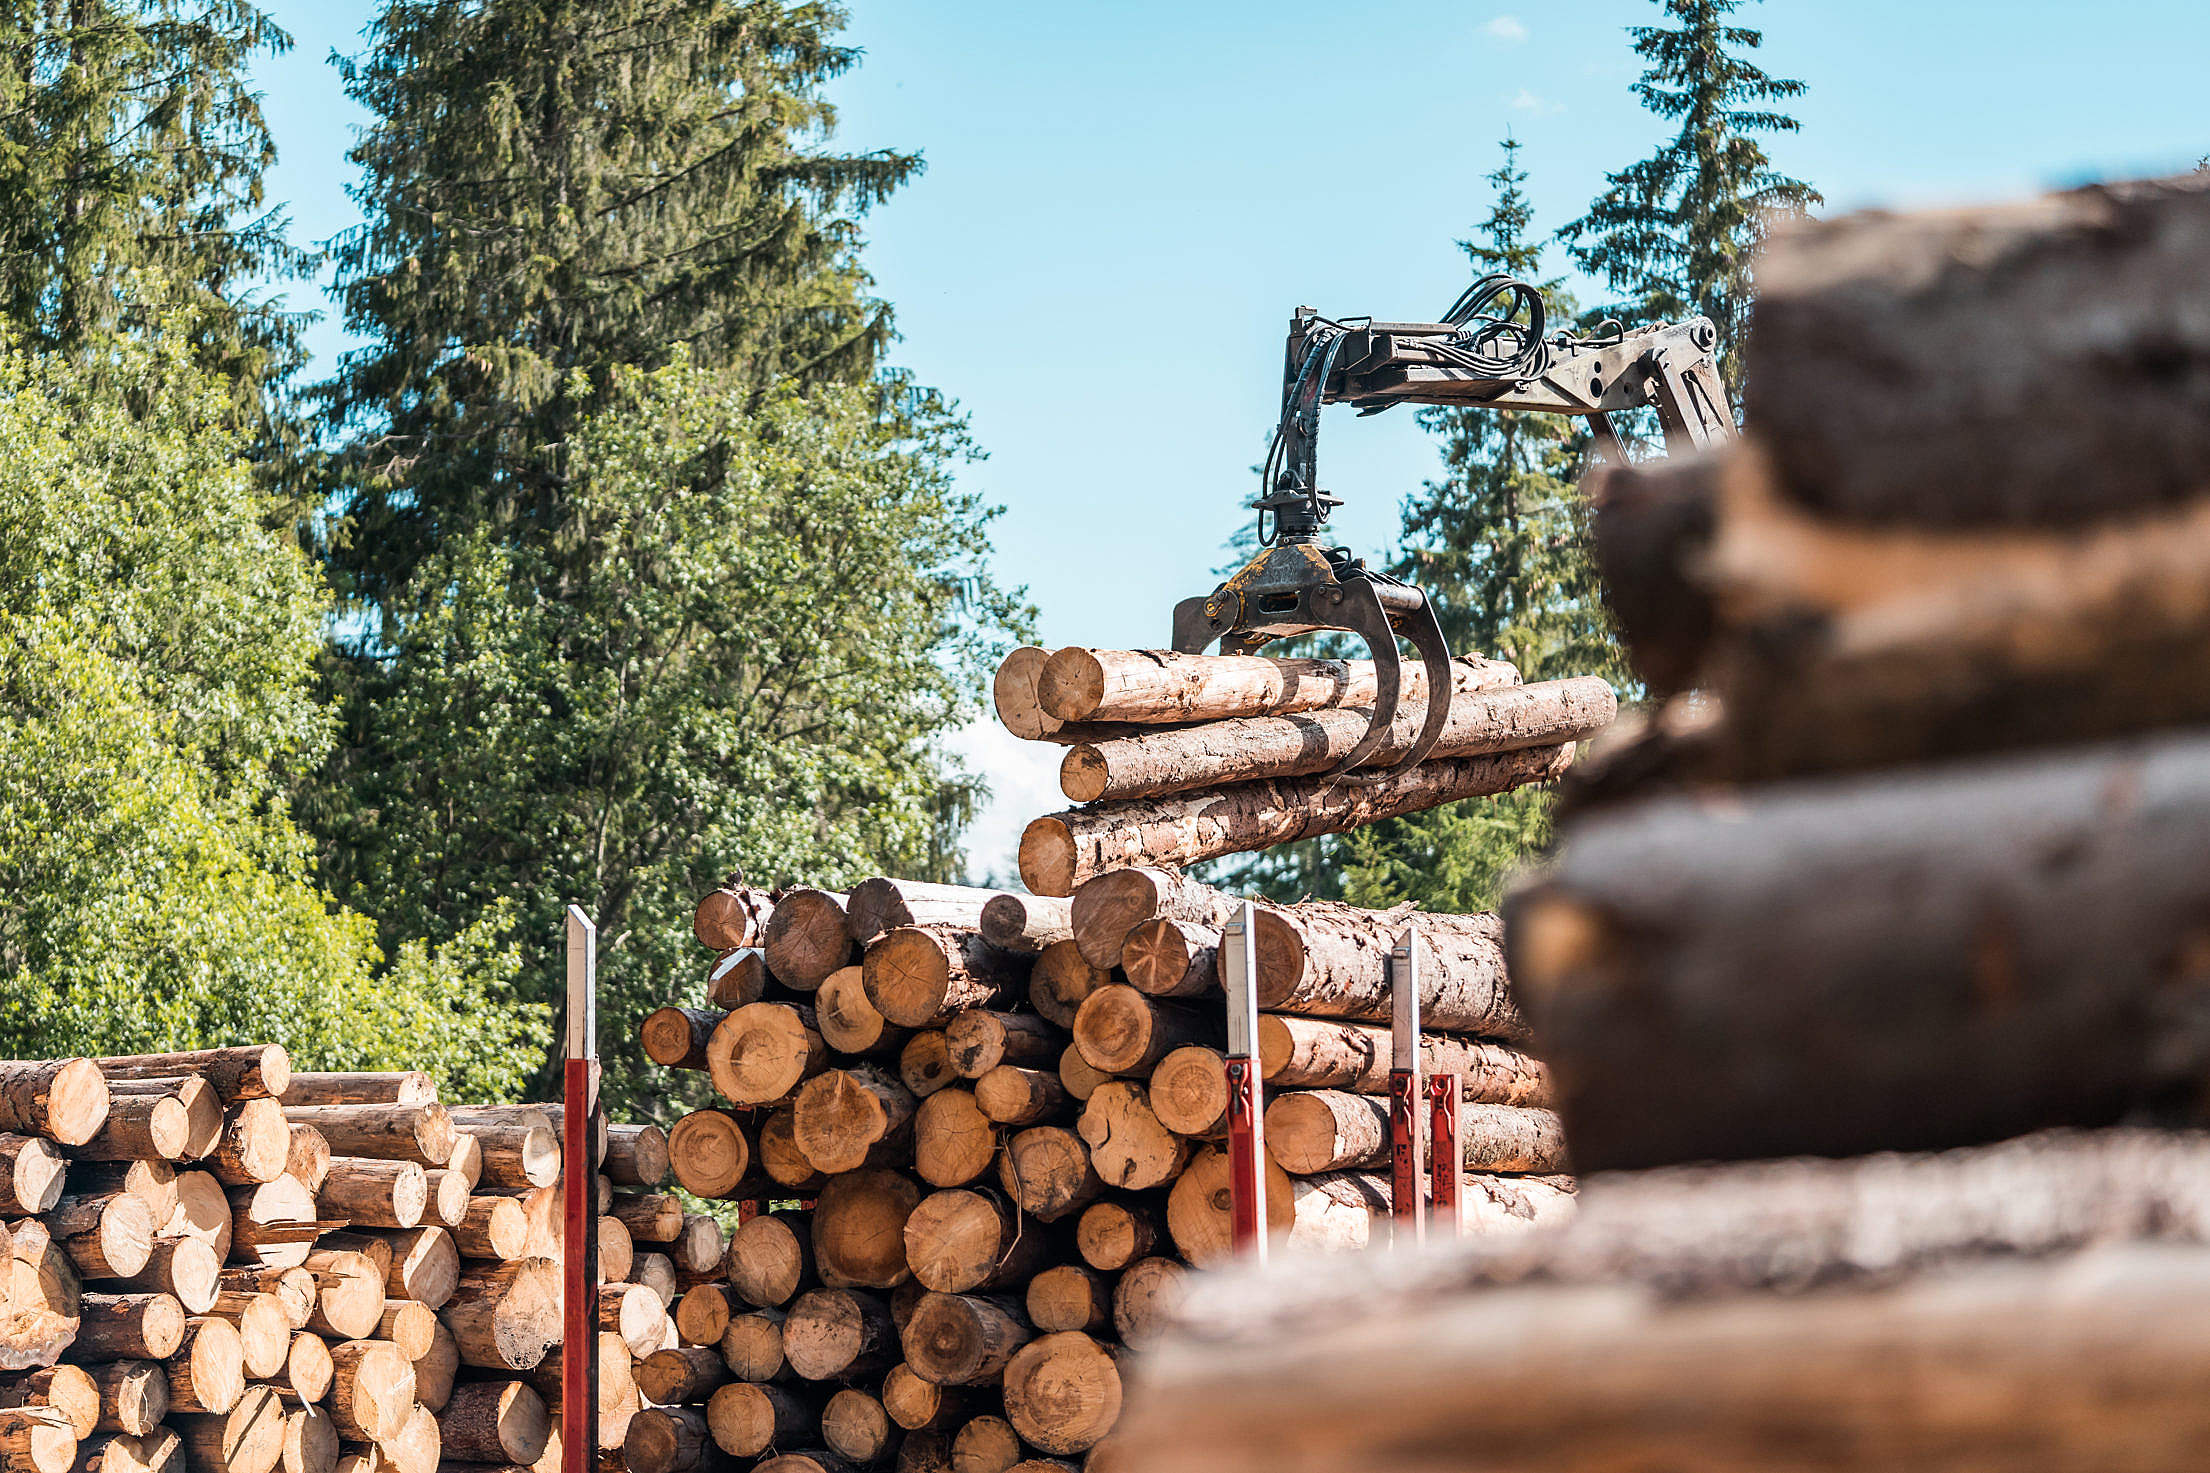 Timber Truck Logging Forestry Operations Free Stock Photo